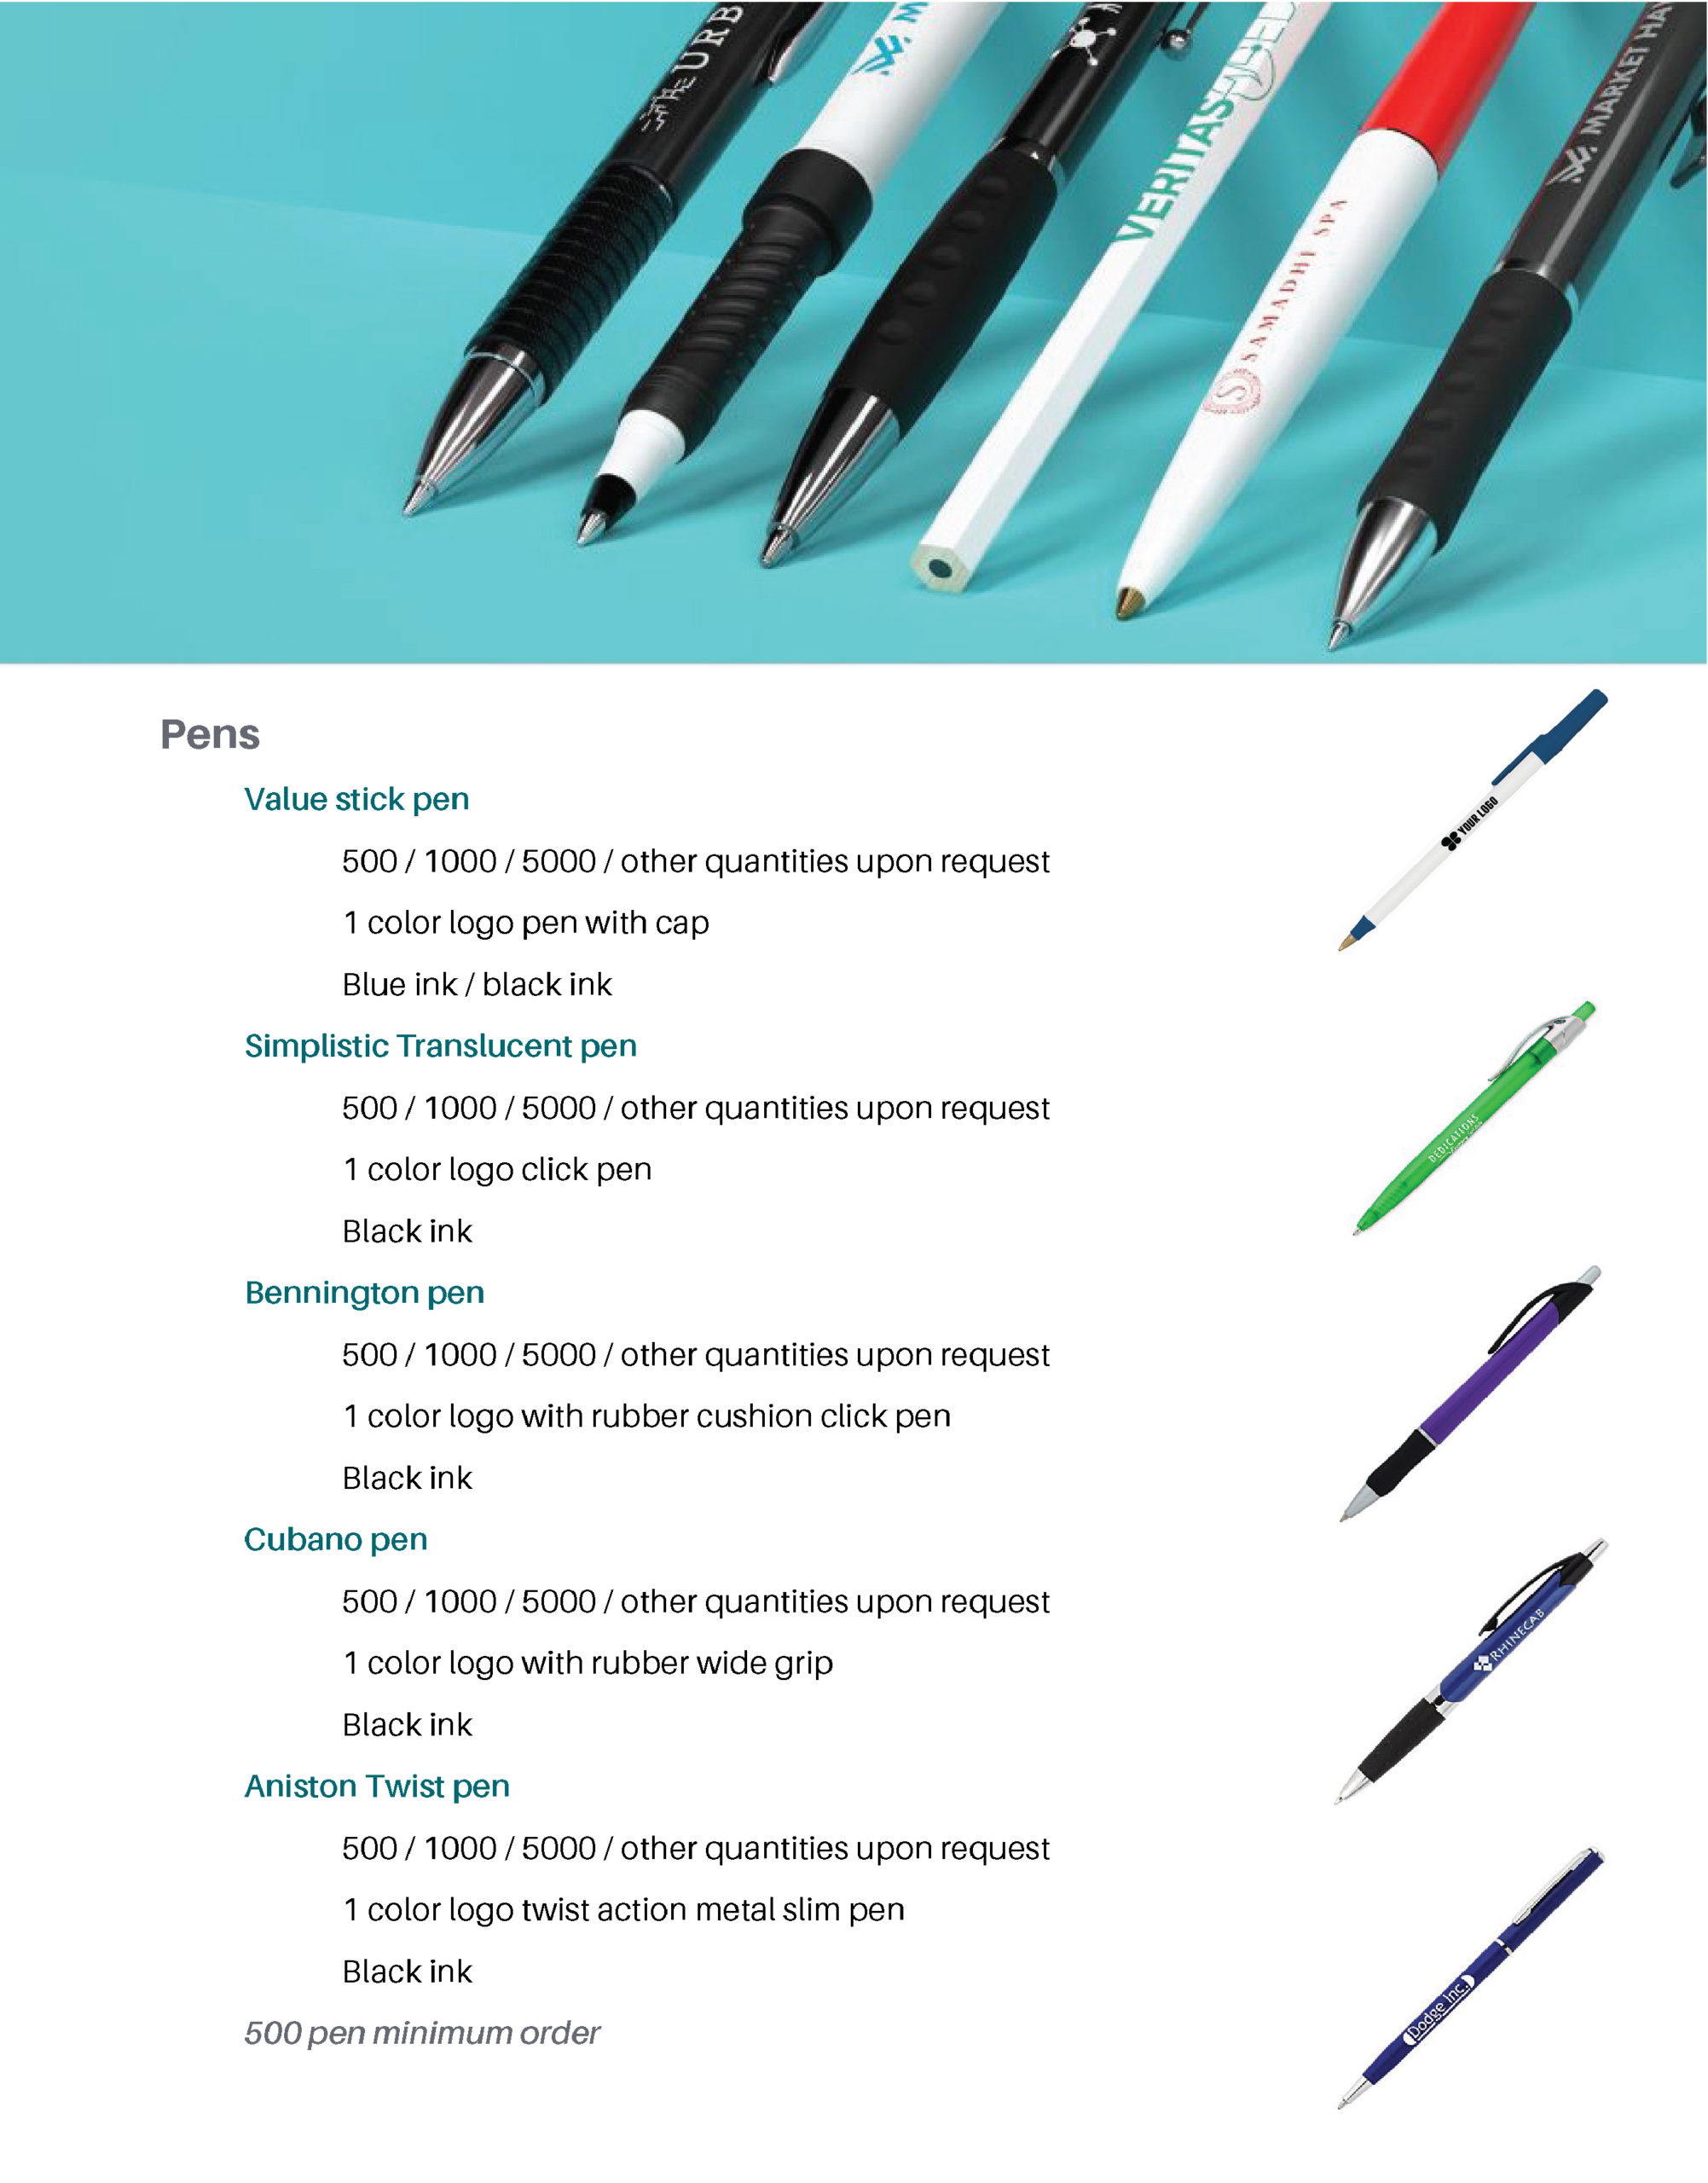 Page featuring product details on: pens